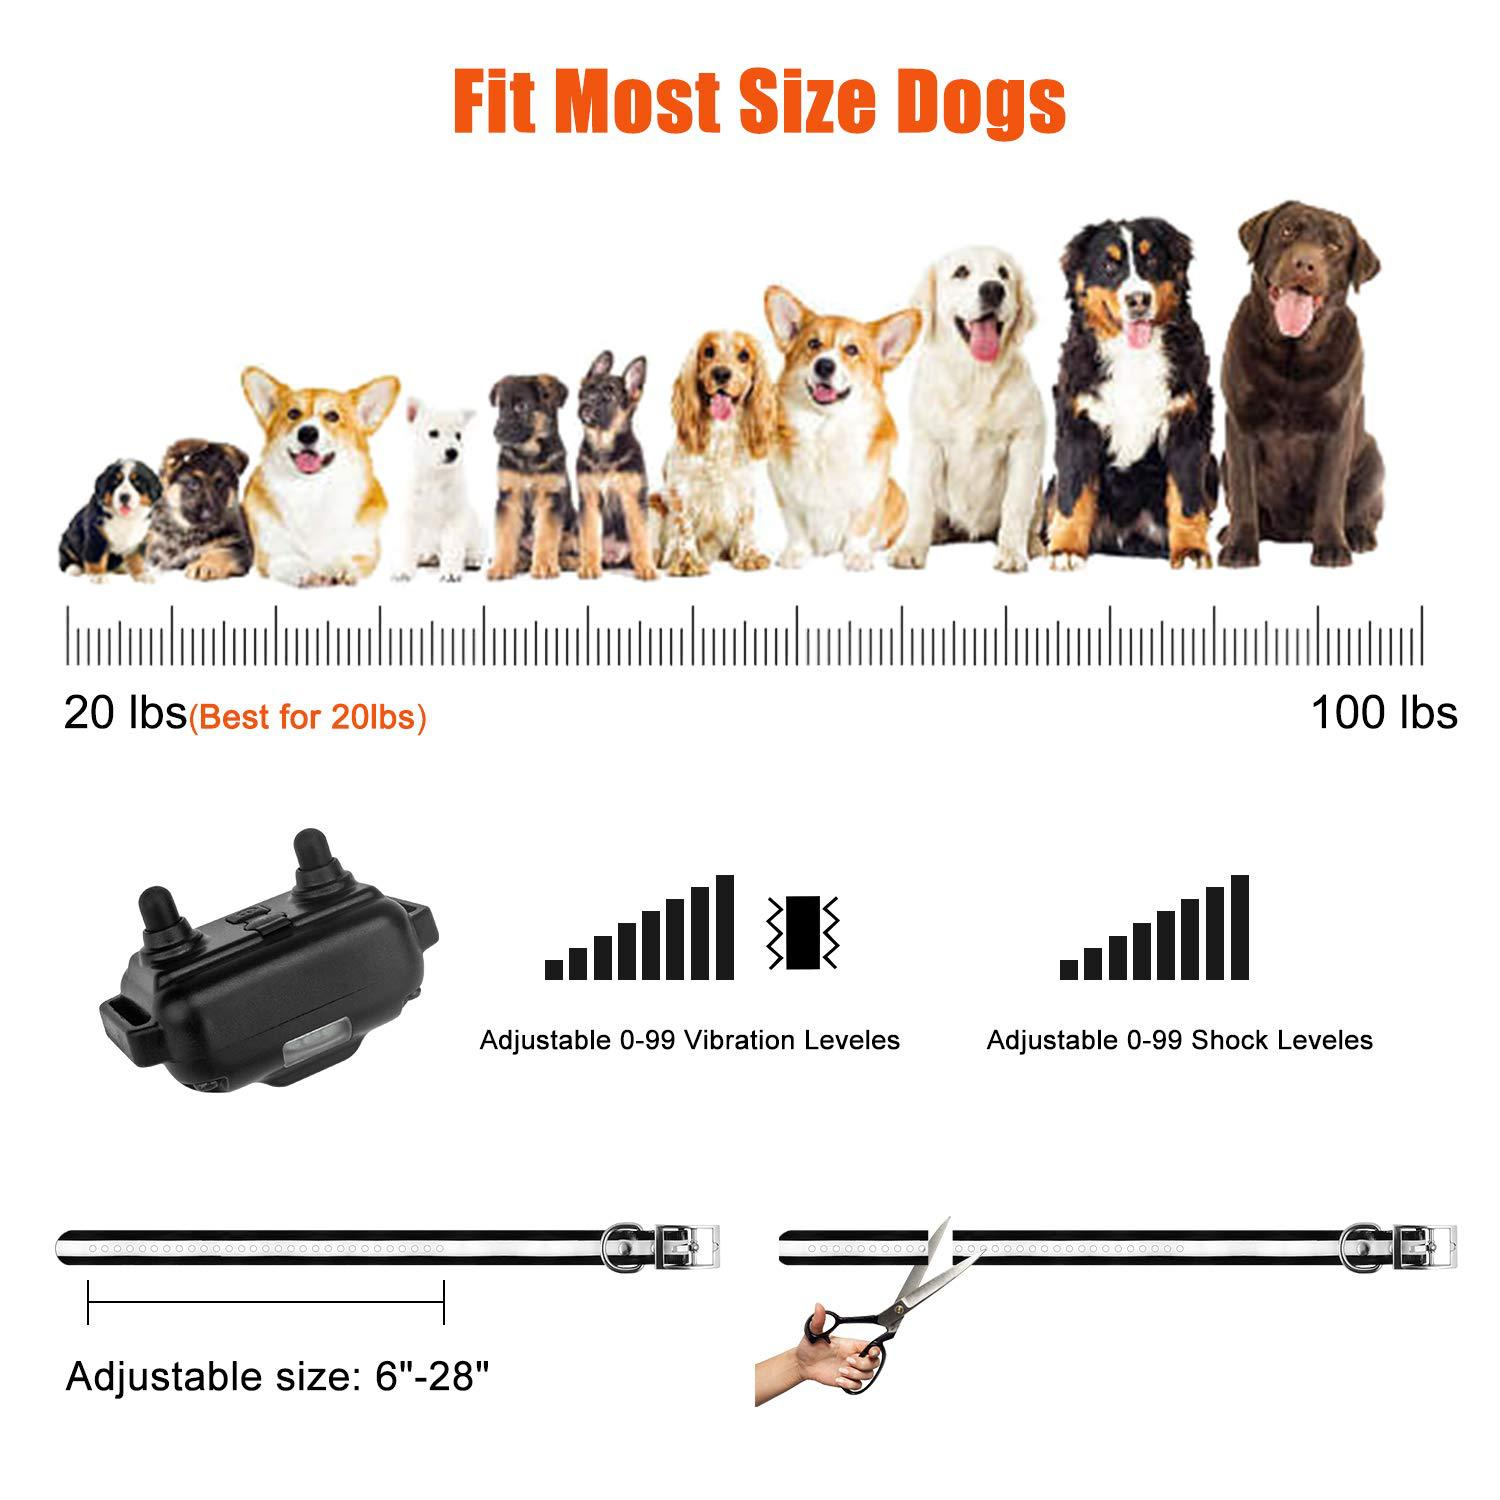 Zhi Fei Qi Dog Fully Automatic Electric Shock Dog Neck Ring Pet Dog Anti-Bite Called Stop Called Electronic Only Fei Neck Ring